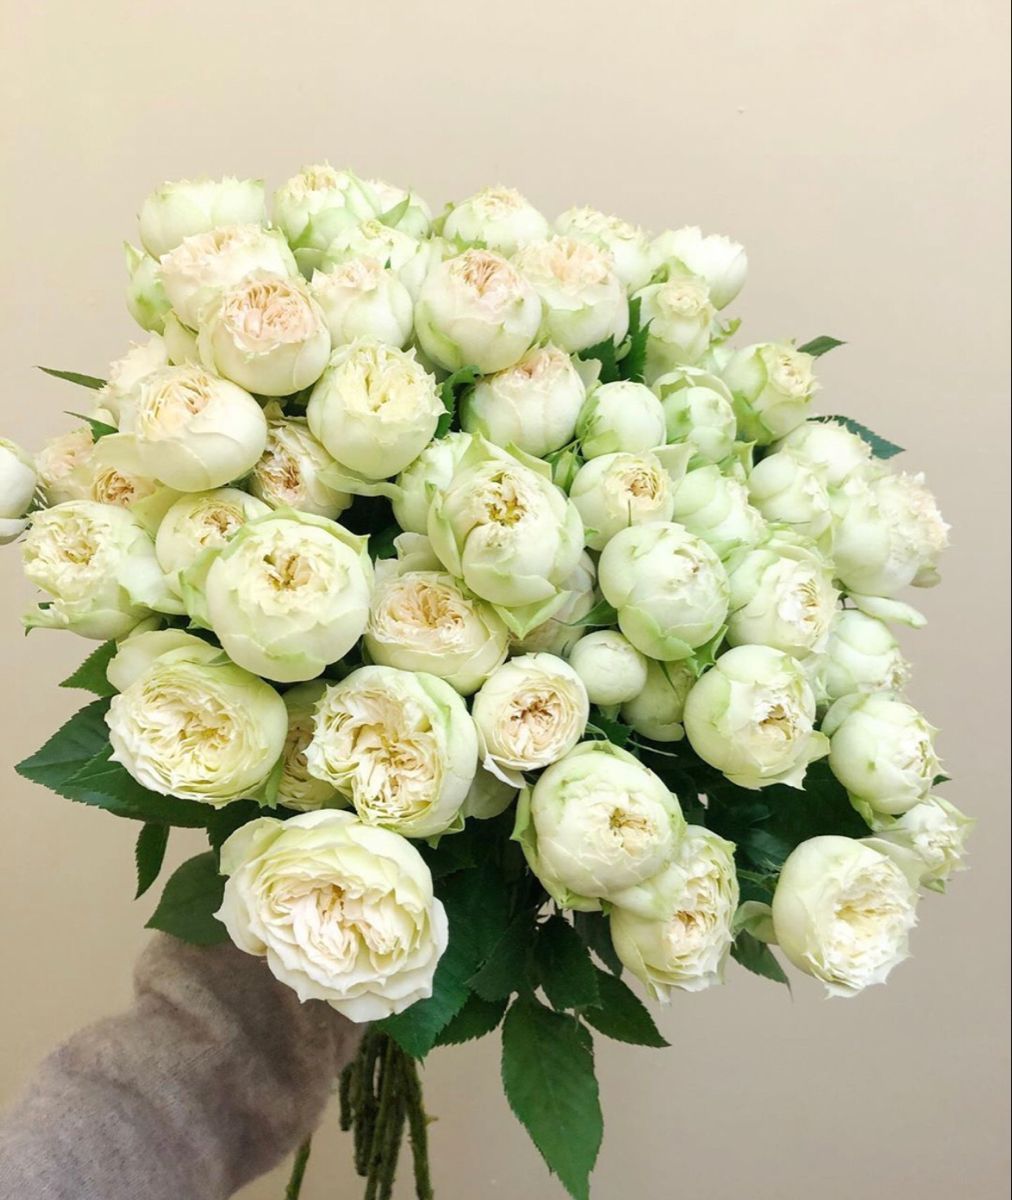 Eternal Rose Arrangement Roses That Last One Year Wholesale Decor Rose Arrangements Rose Centerpieces